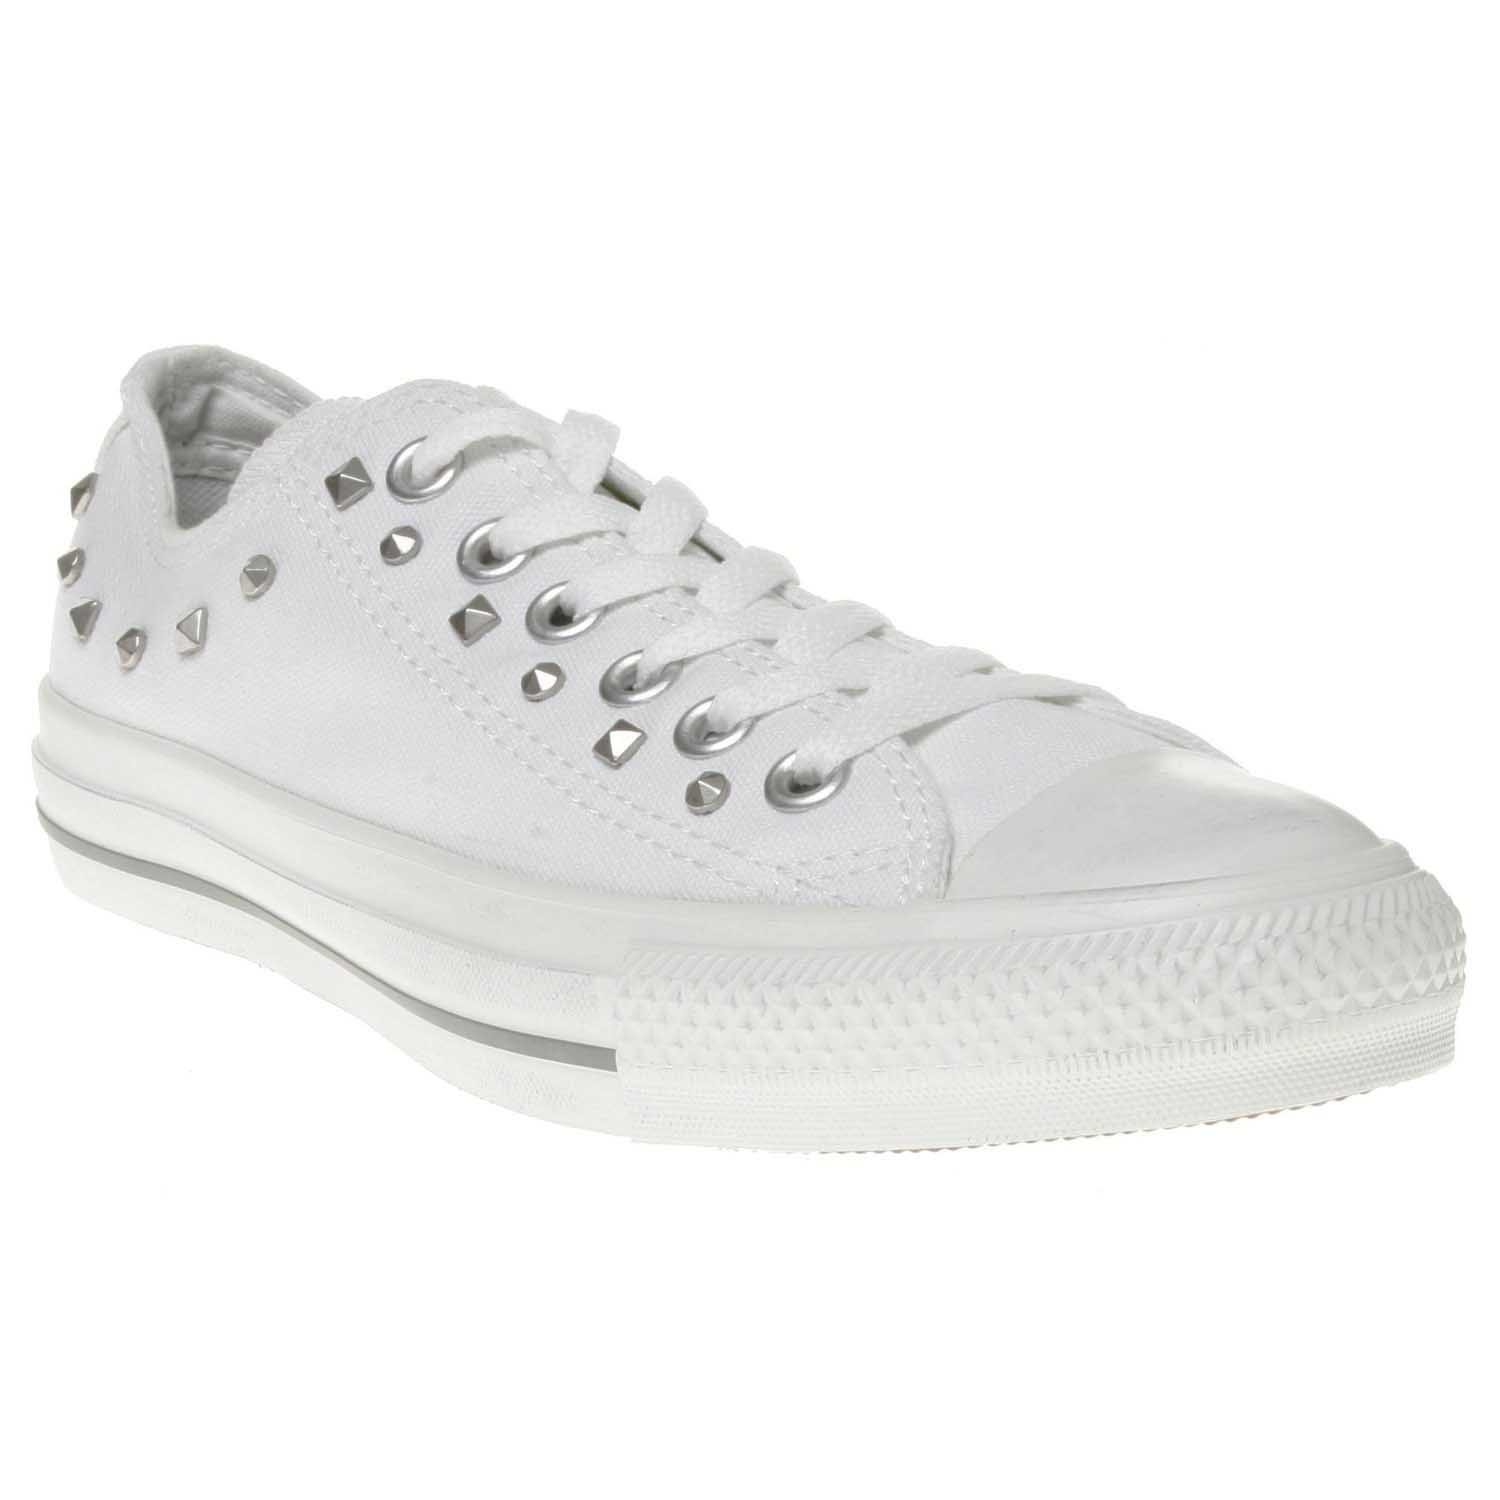 2d9911bc56da White Studded Converse All Star Shoes - Chuck Taylor Trainers with studs